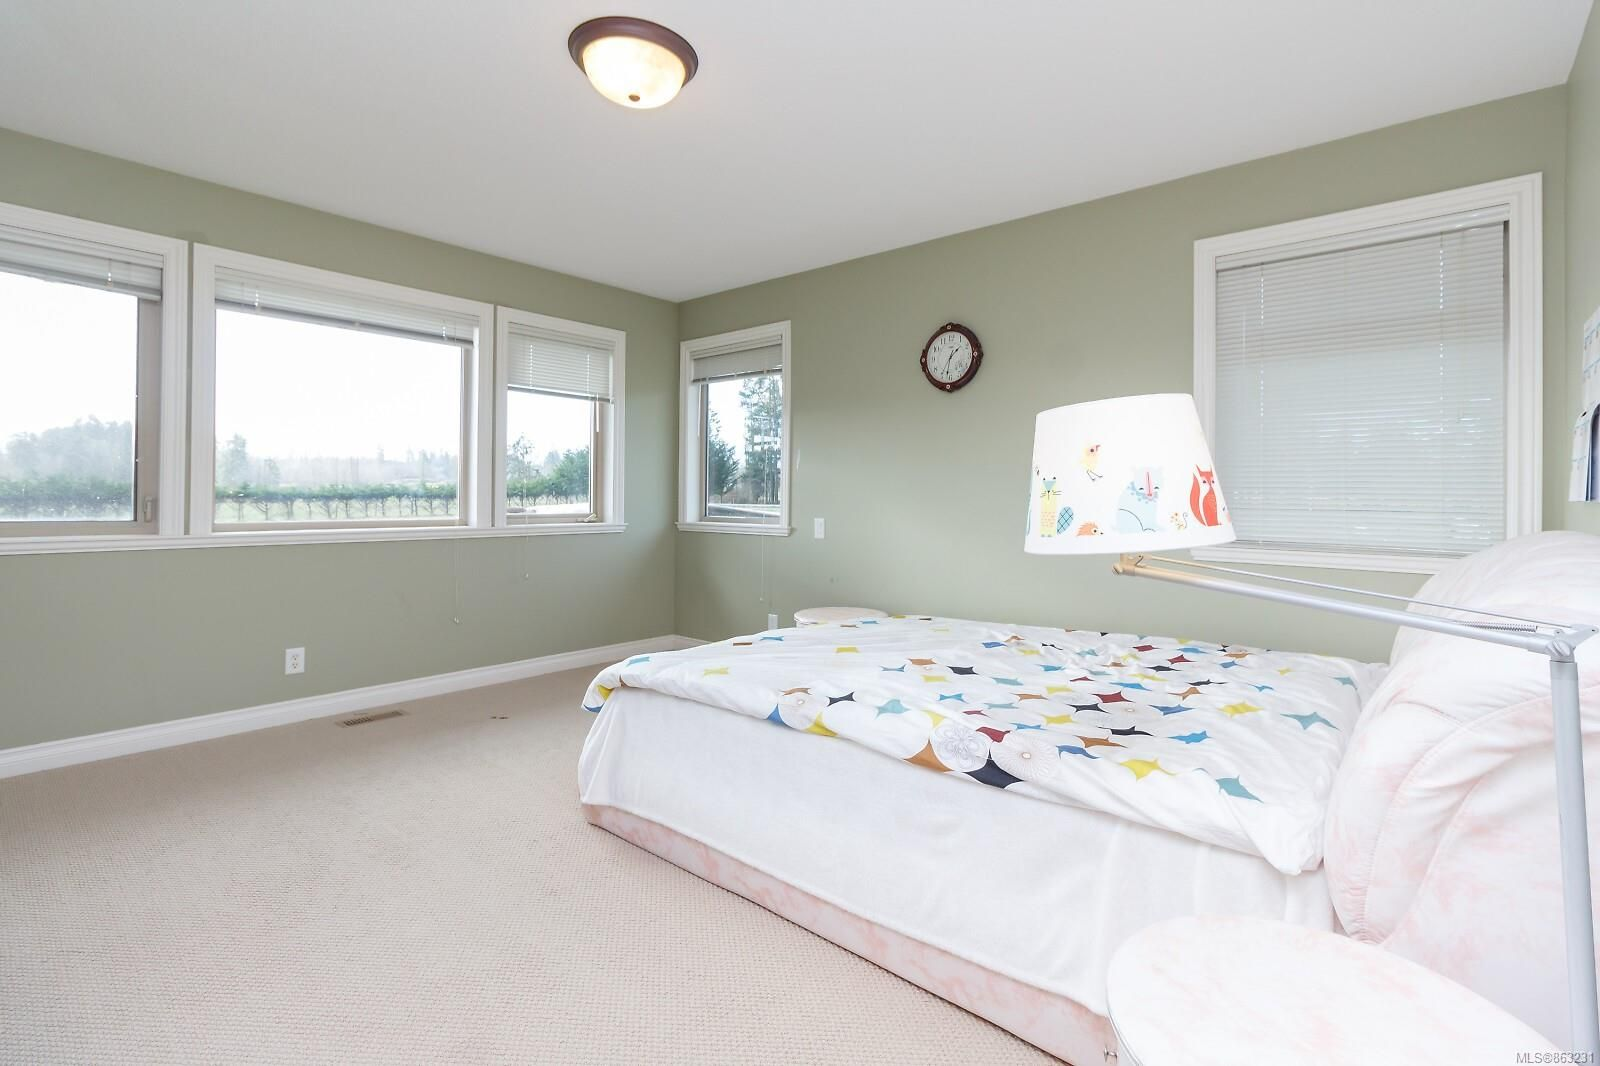 Photo 11: Photos: 1230 Hodges Rd in : PQ French Creek House for sale (Parksville/Qualicum)  : MLS®# 863231